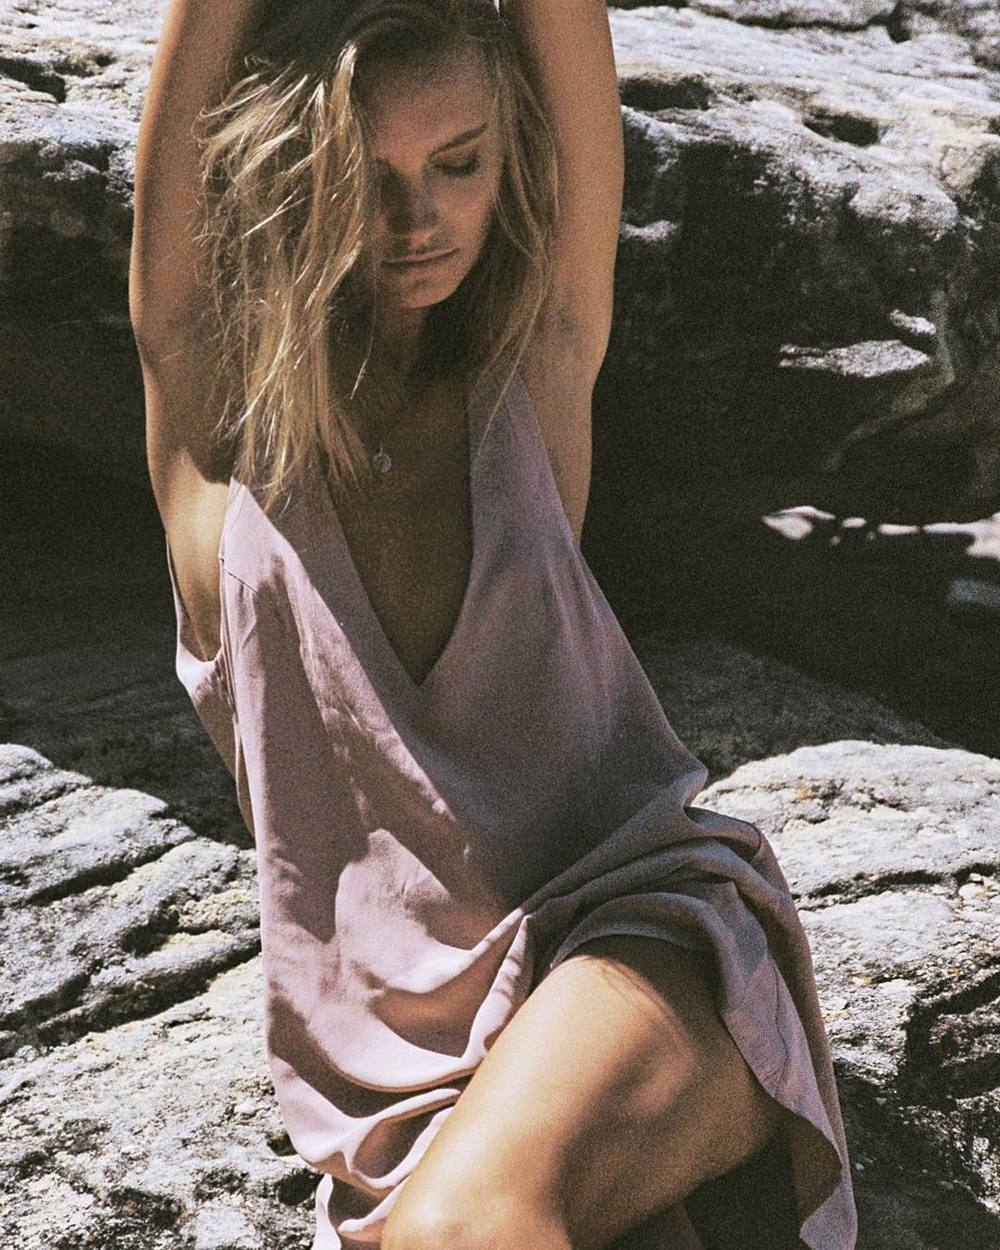 MAYA__The_Marthe_Dress__Available_online_now___mayastepper_by__wolfcubwolfcub___sirthelabel_by_sir_thelabel.jpg